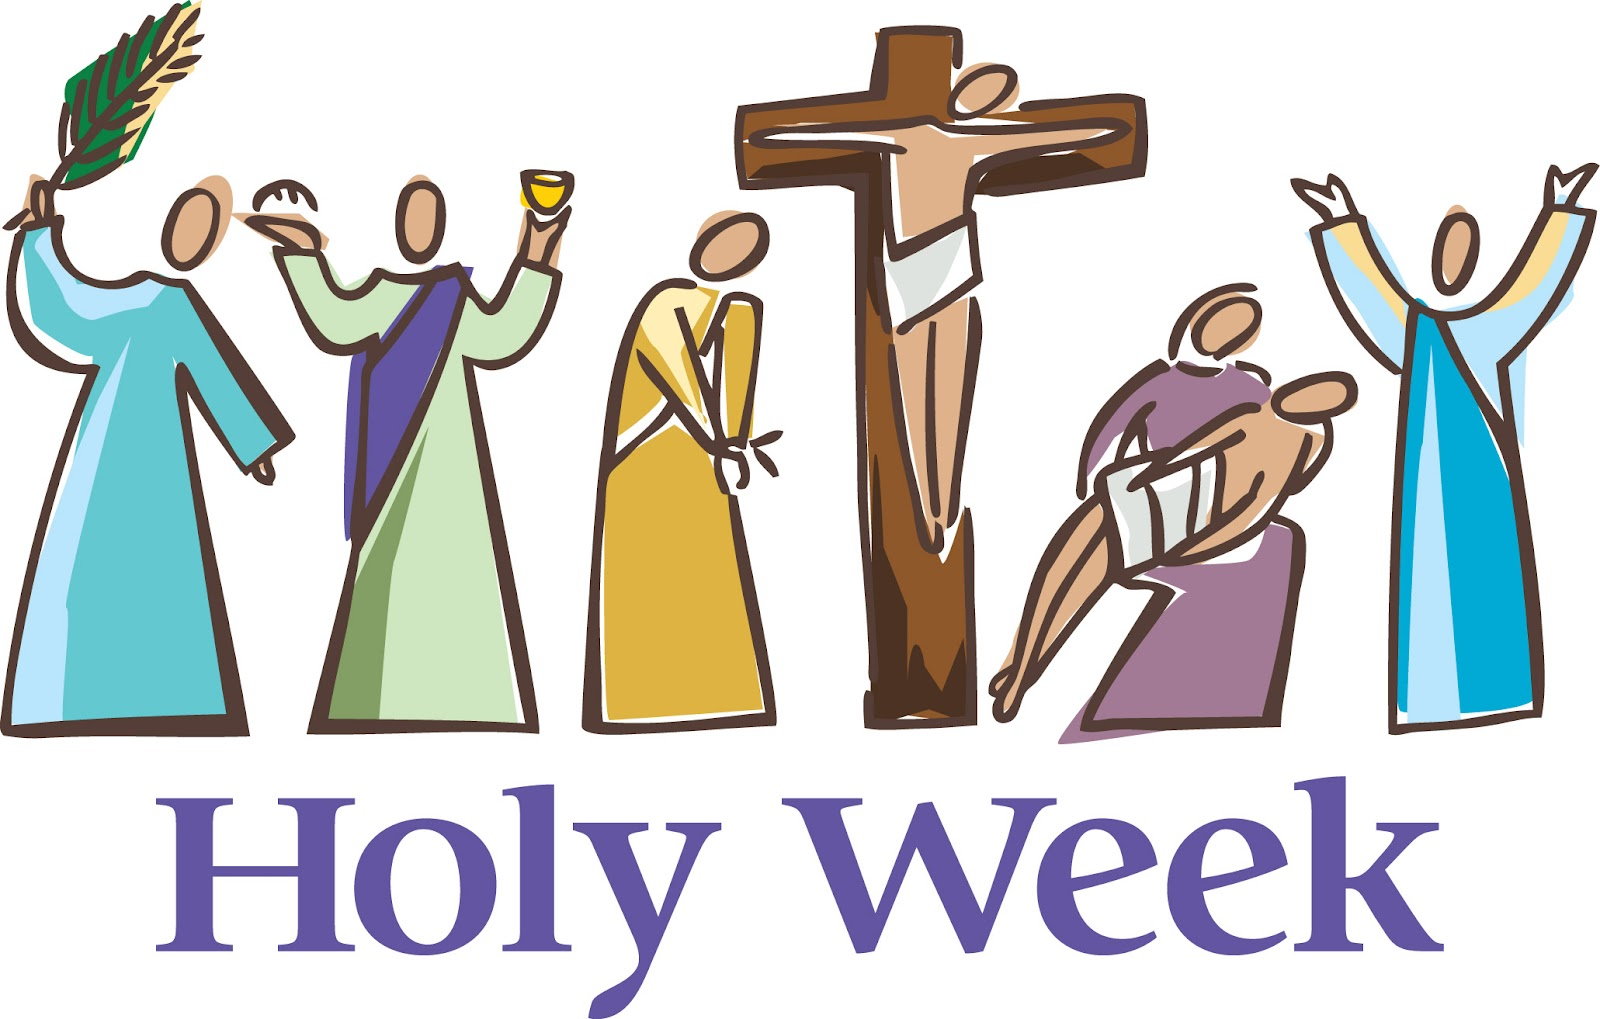 Catholic clipart holy week. Christian our lady s